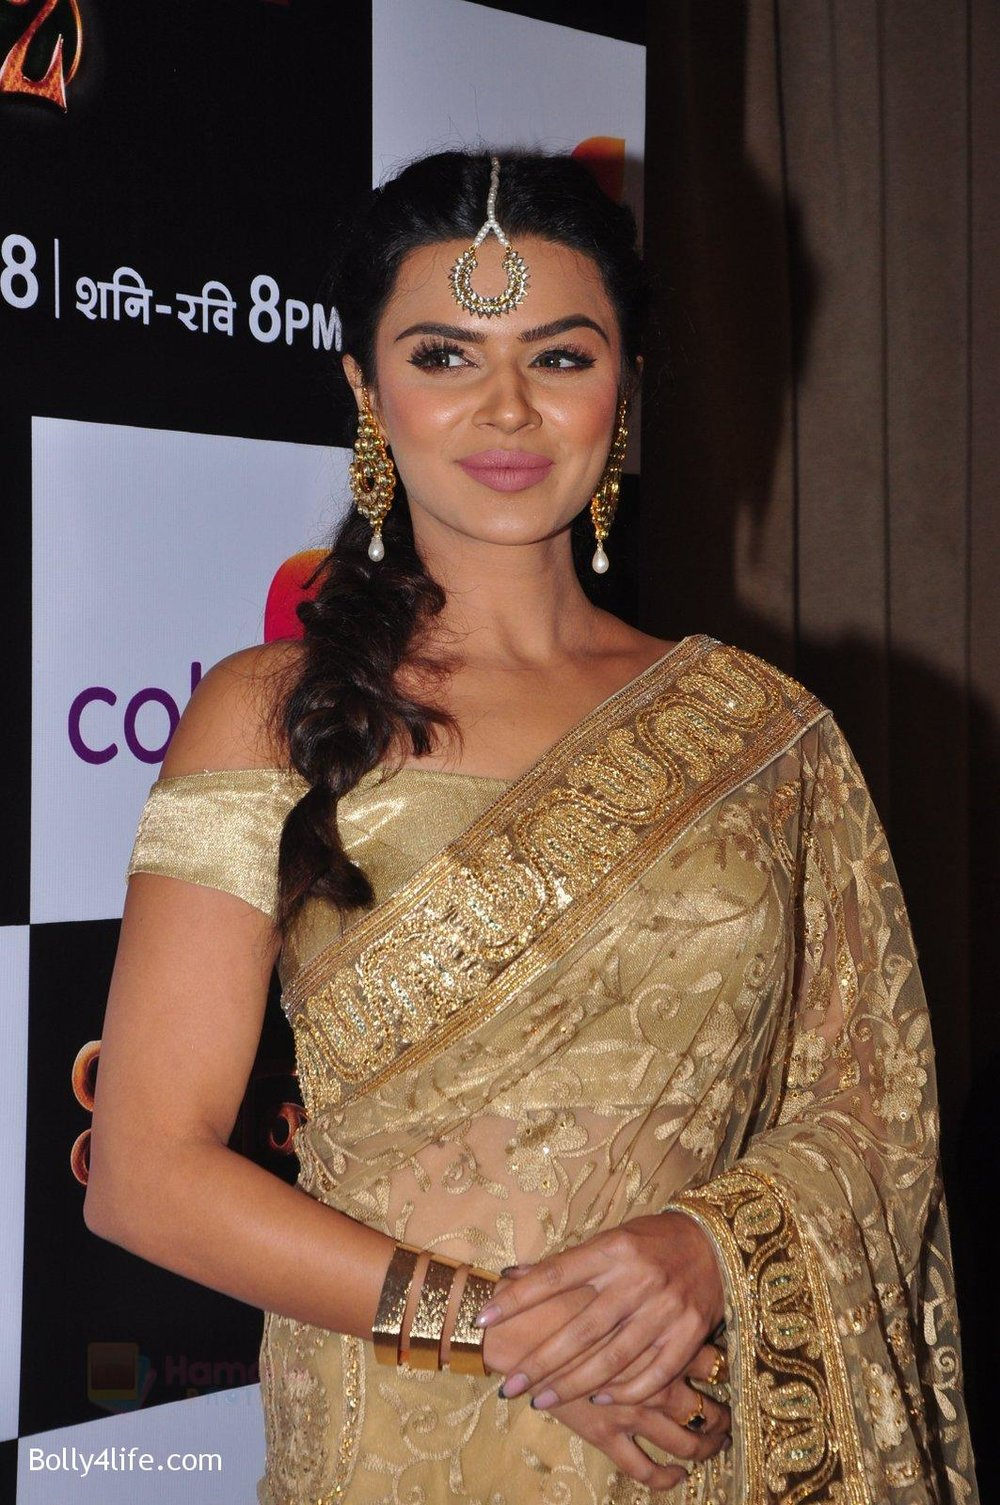 Aashka-Goradia-at-Naagin-2-launch-in-Mumbai-on-4th-Oct-2016-21.jpg